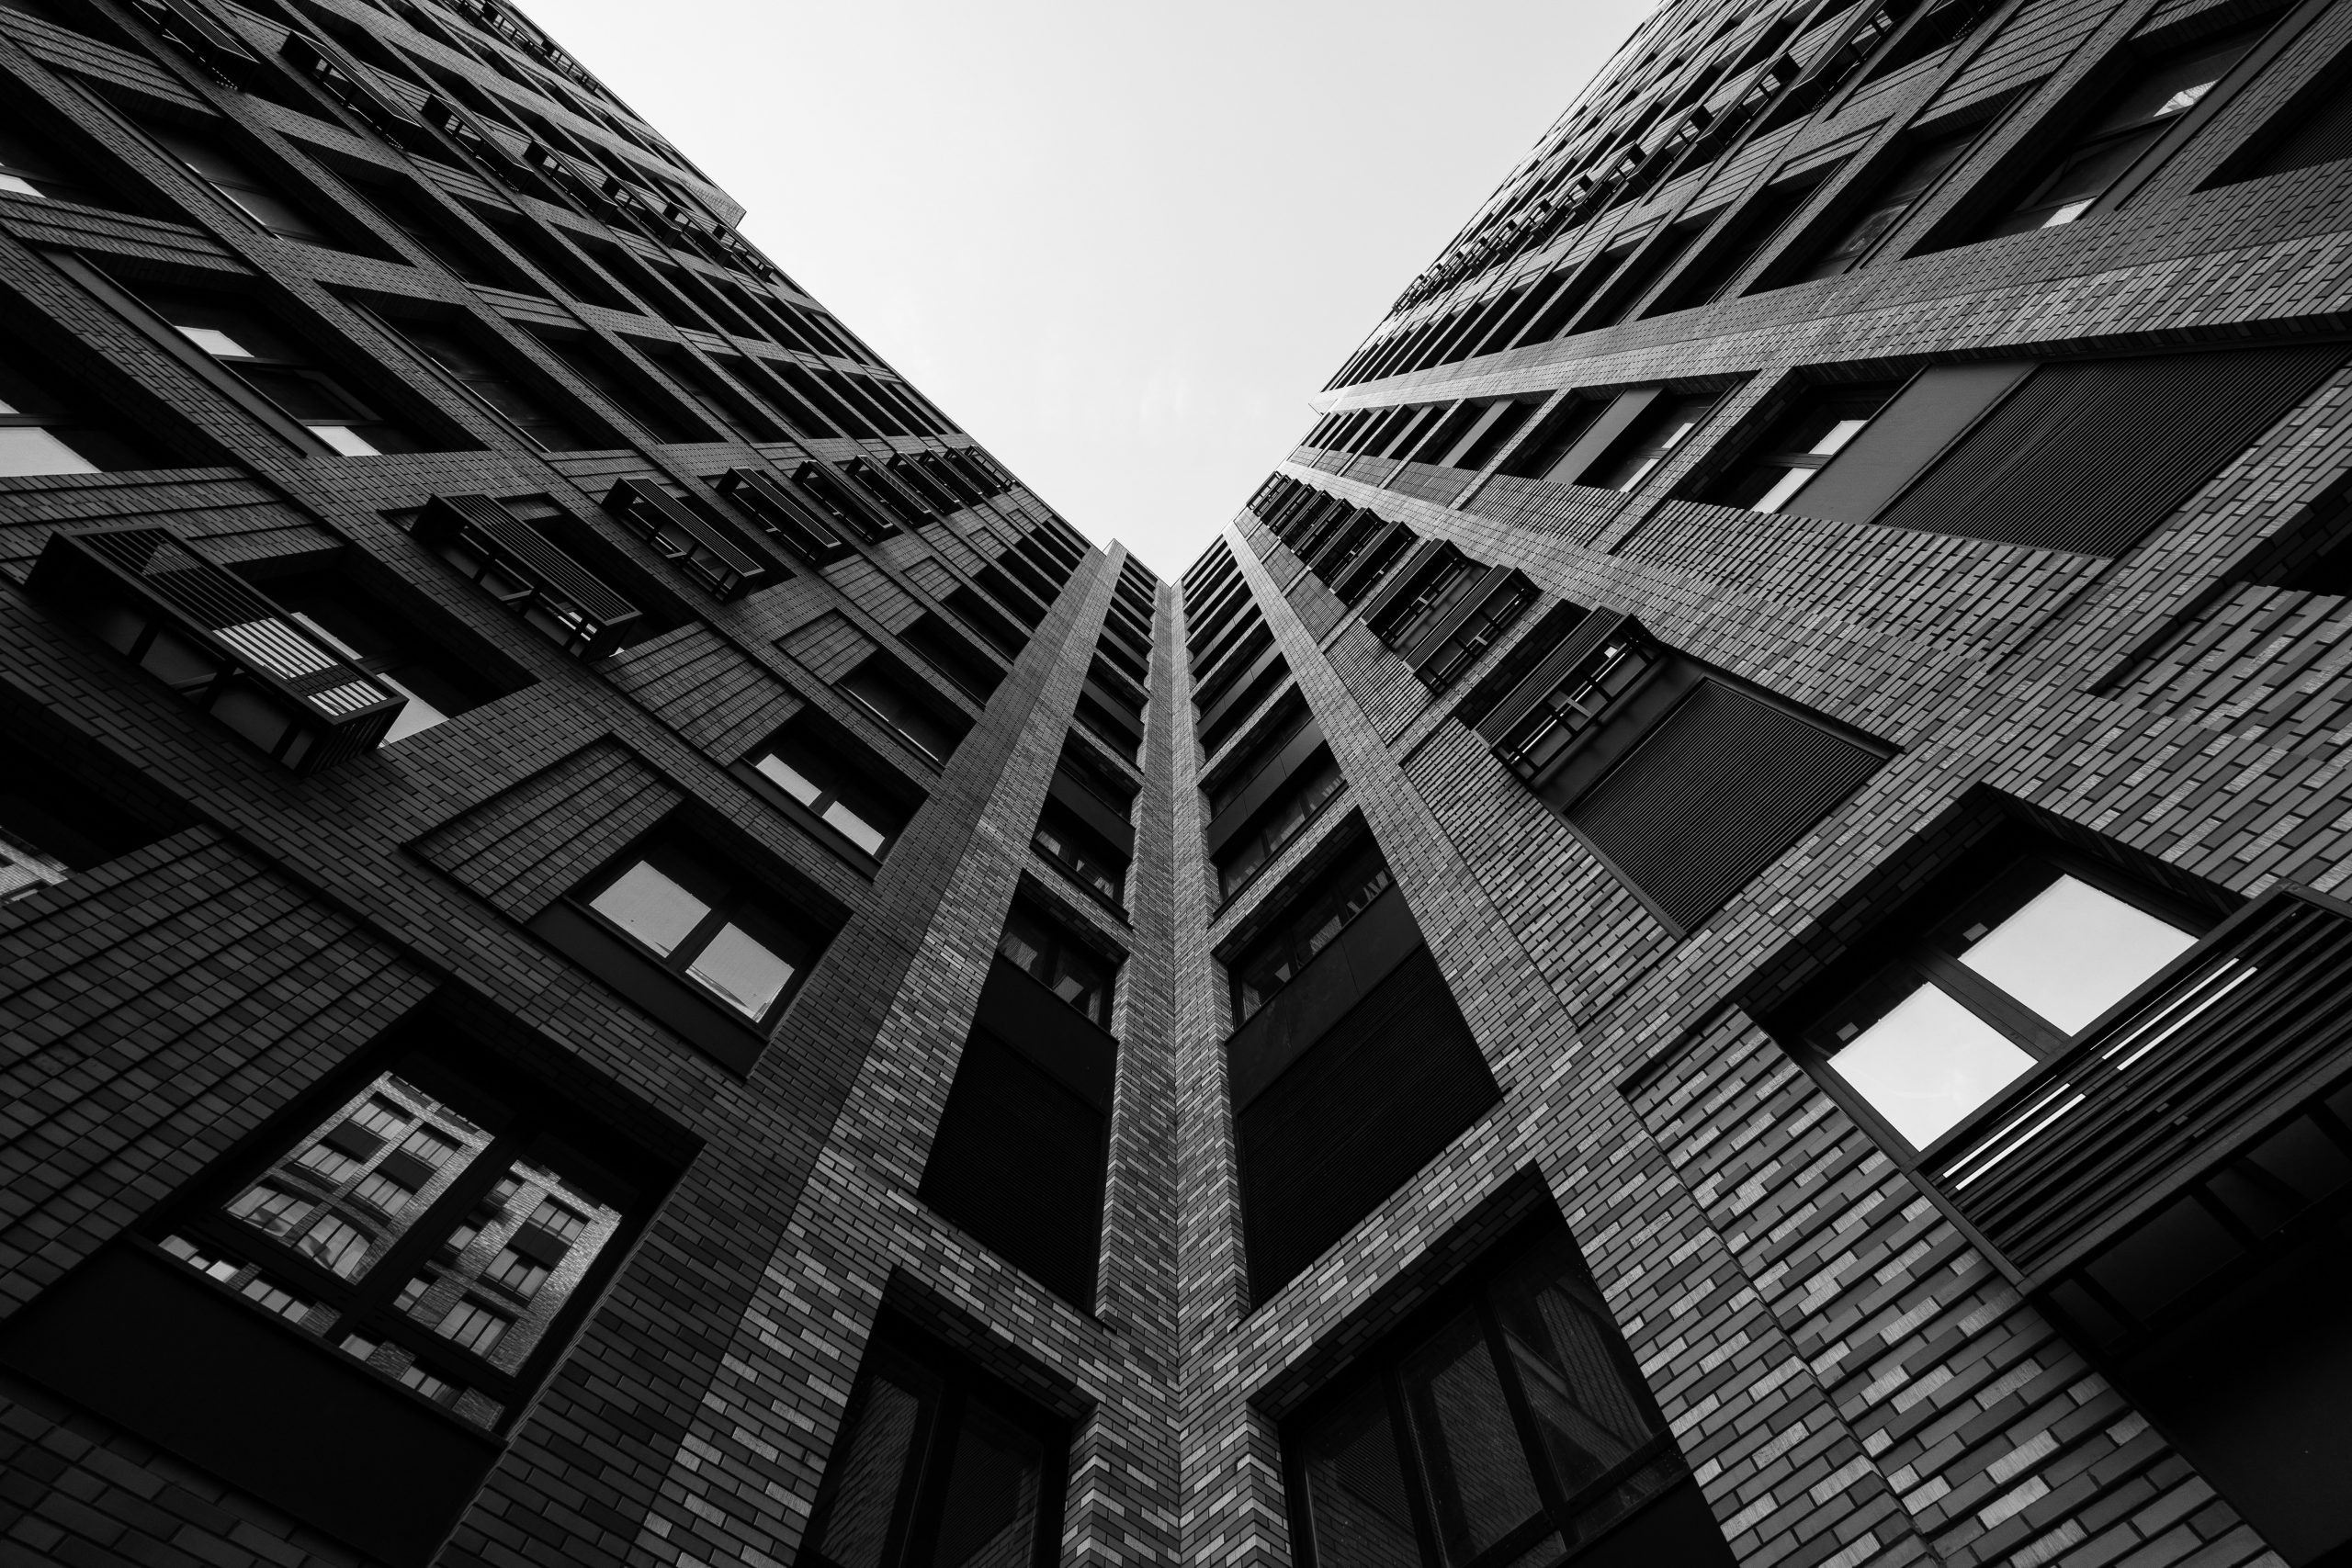 Black and white apartment building